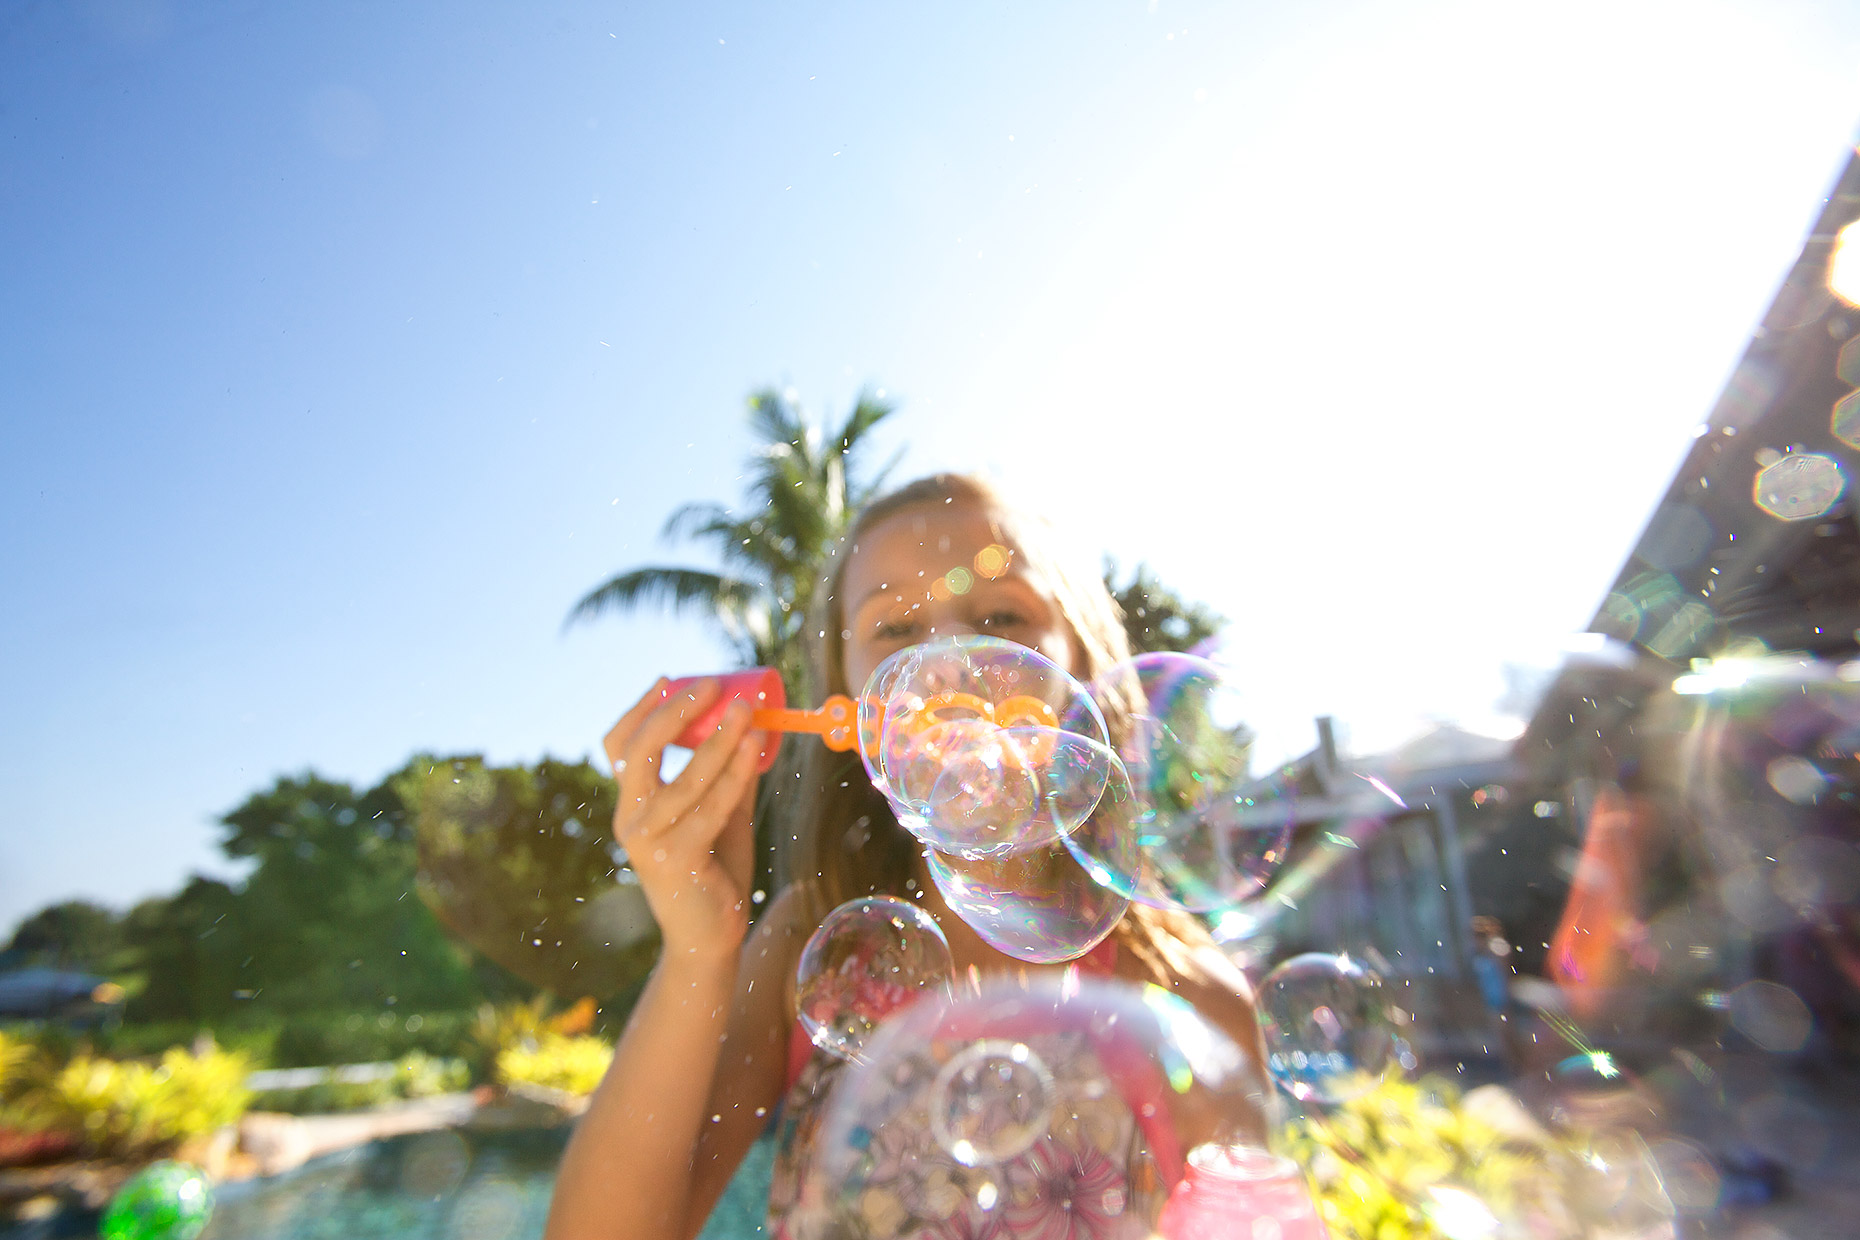 young girl blows soap bubbles pov_Robert_Holland.jpg